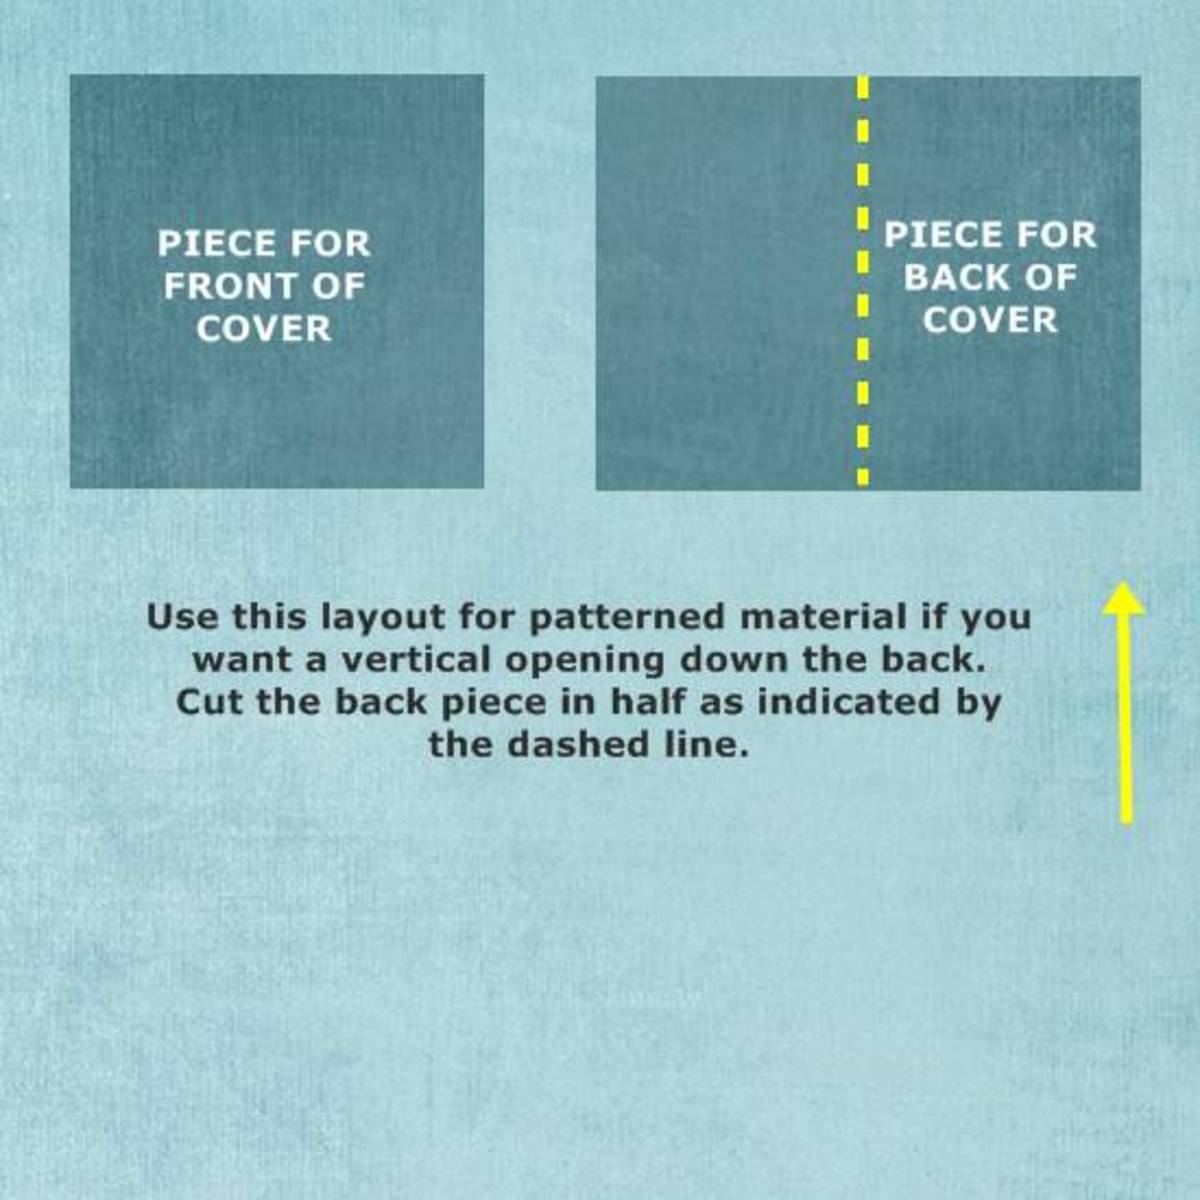 Picture 2. Guide For Vertical Opening